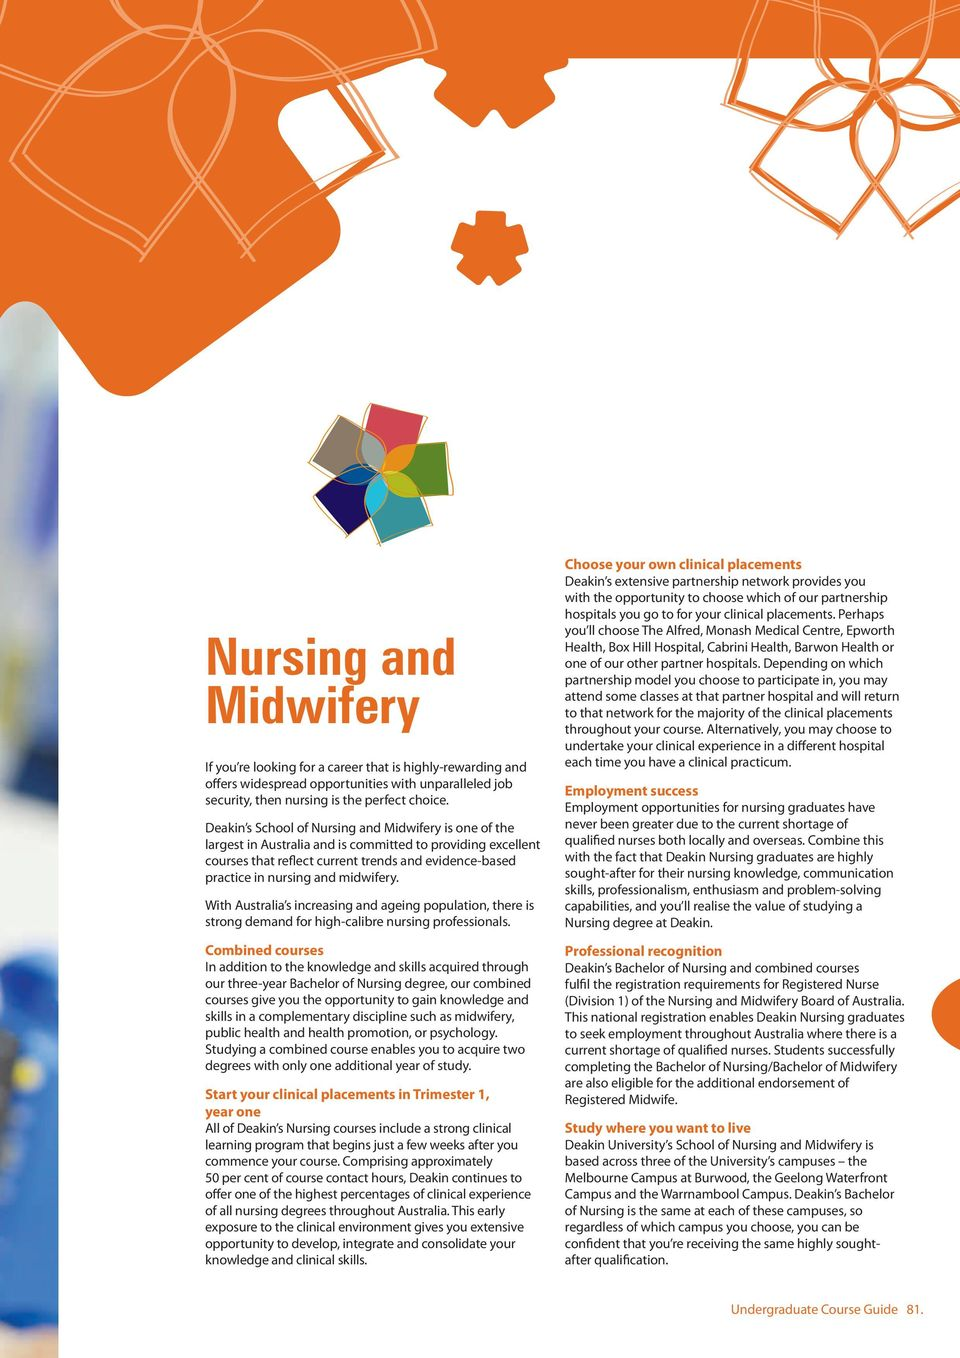 midwifery. With Australia s increasing and ageing population, there is strong demand for high-calibre nursing professionals.